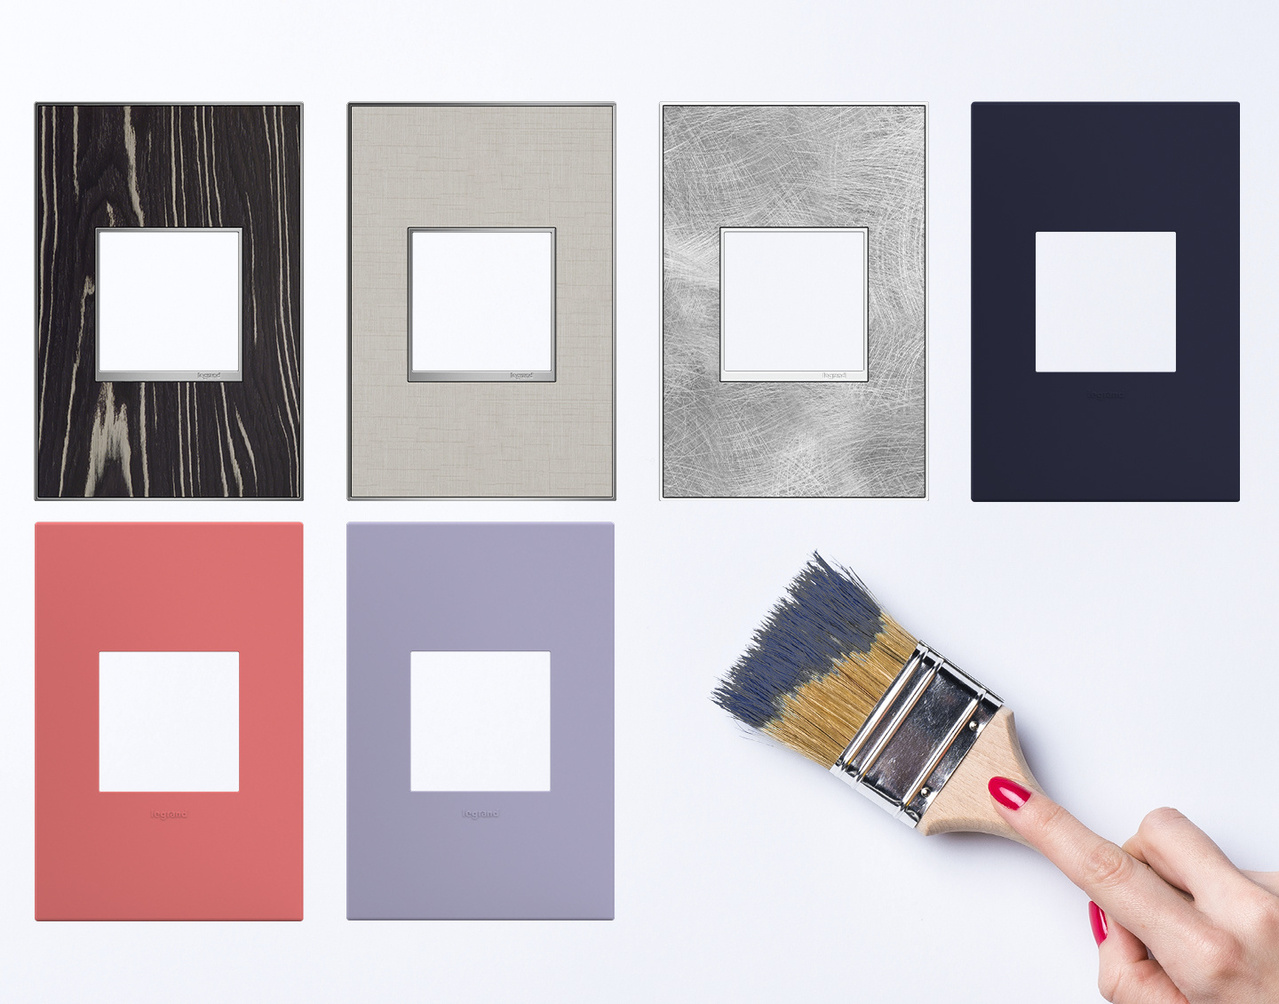 adorne Collection designer wall plates collage next to a paint brush